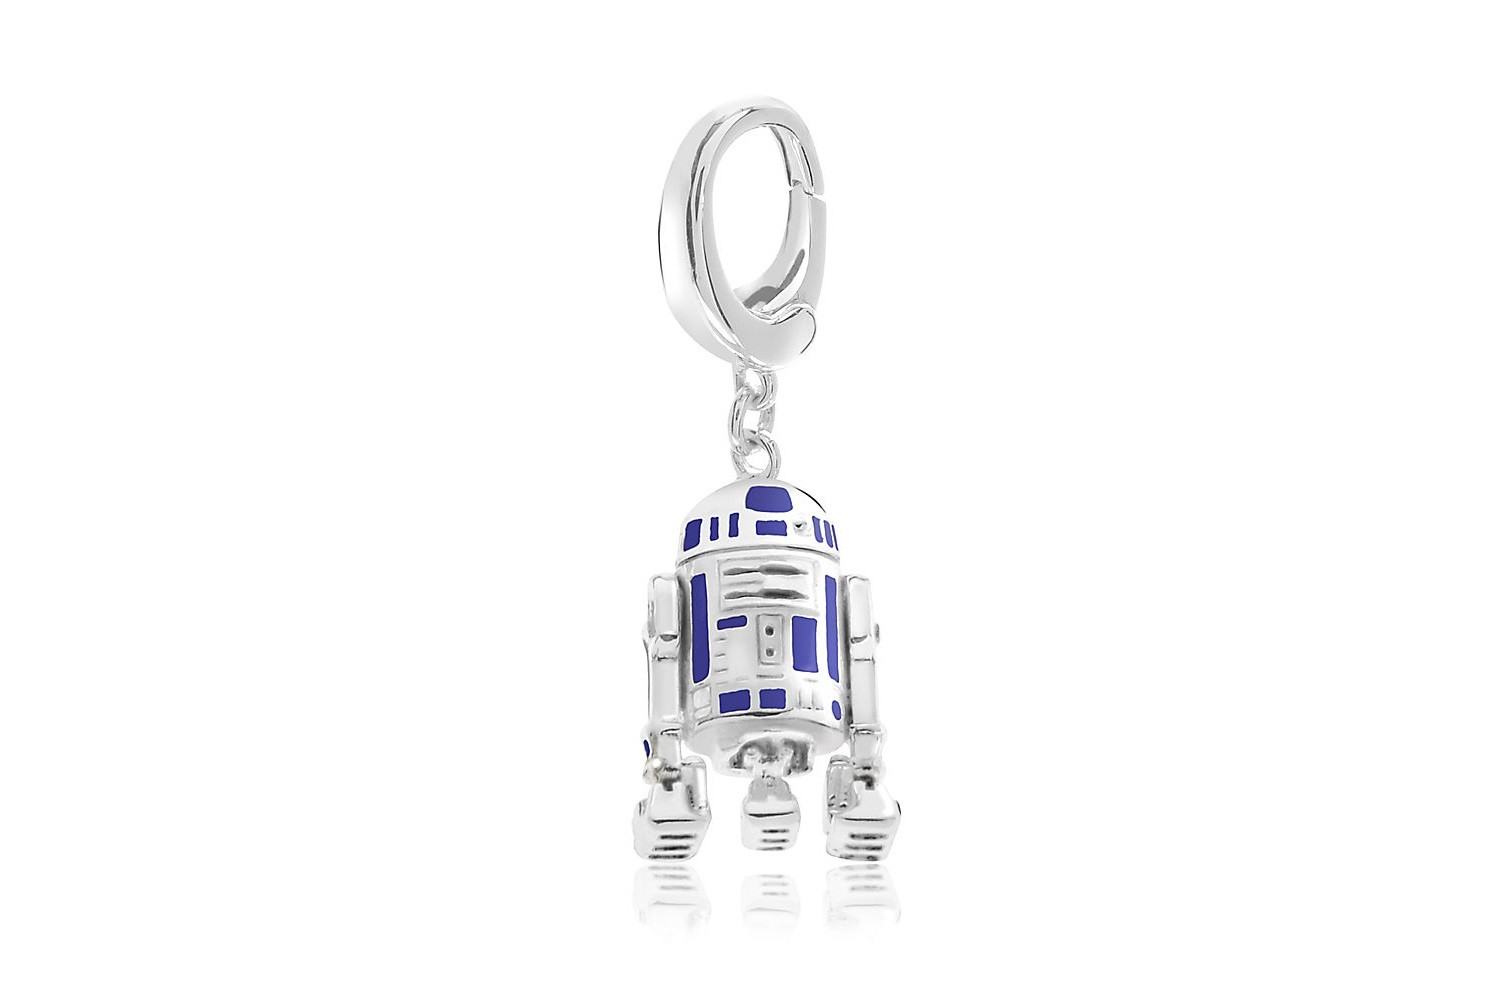 New Silver R2-D2 charm at Disney Store